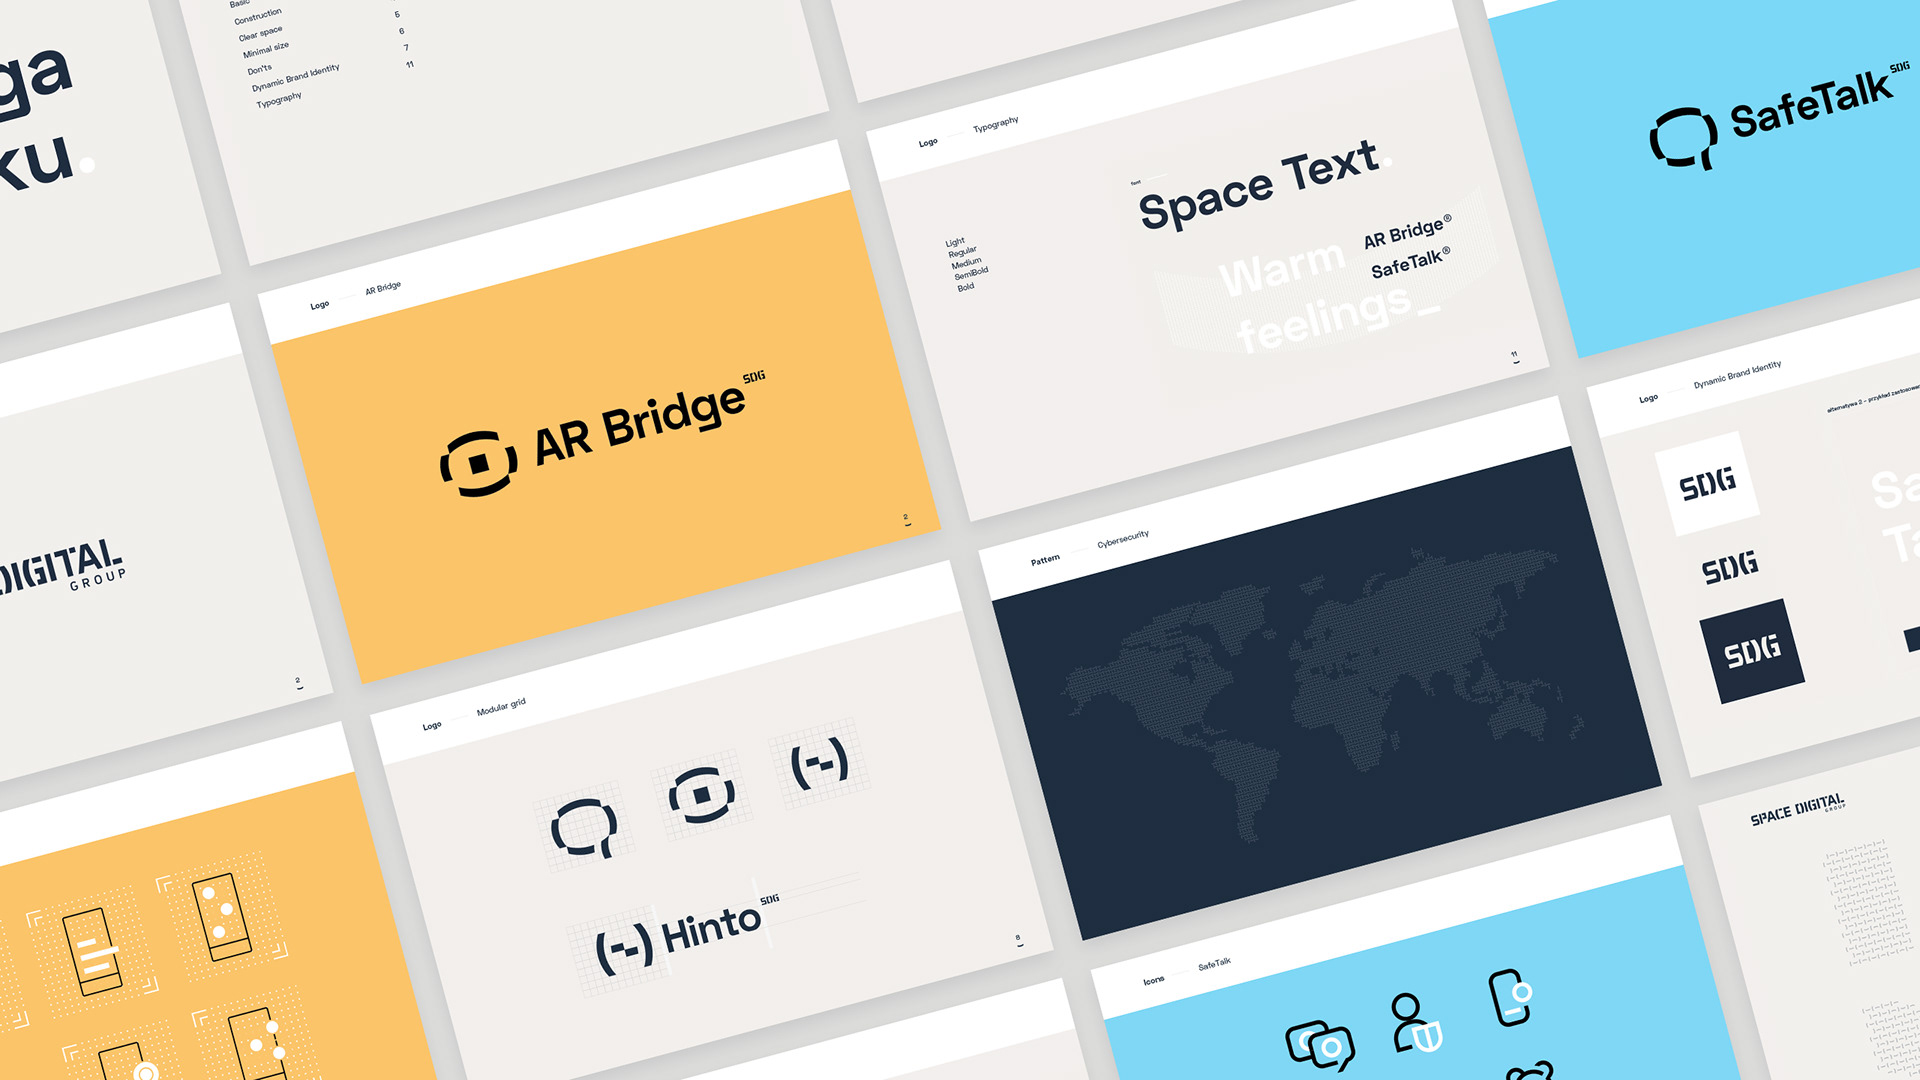 Brand Identity Guidelines prepared by HeroDOT for Space Digital Groups such as AR Bridge, SafeTalk and more.